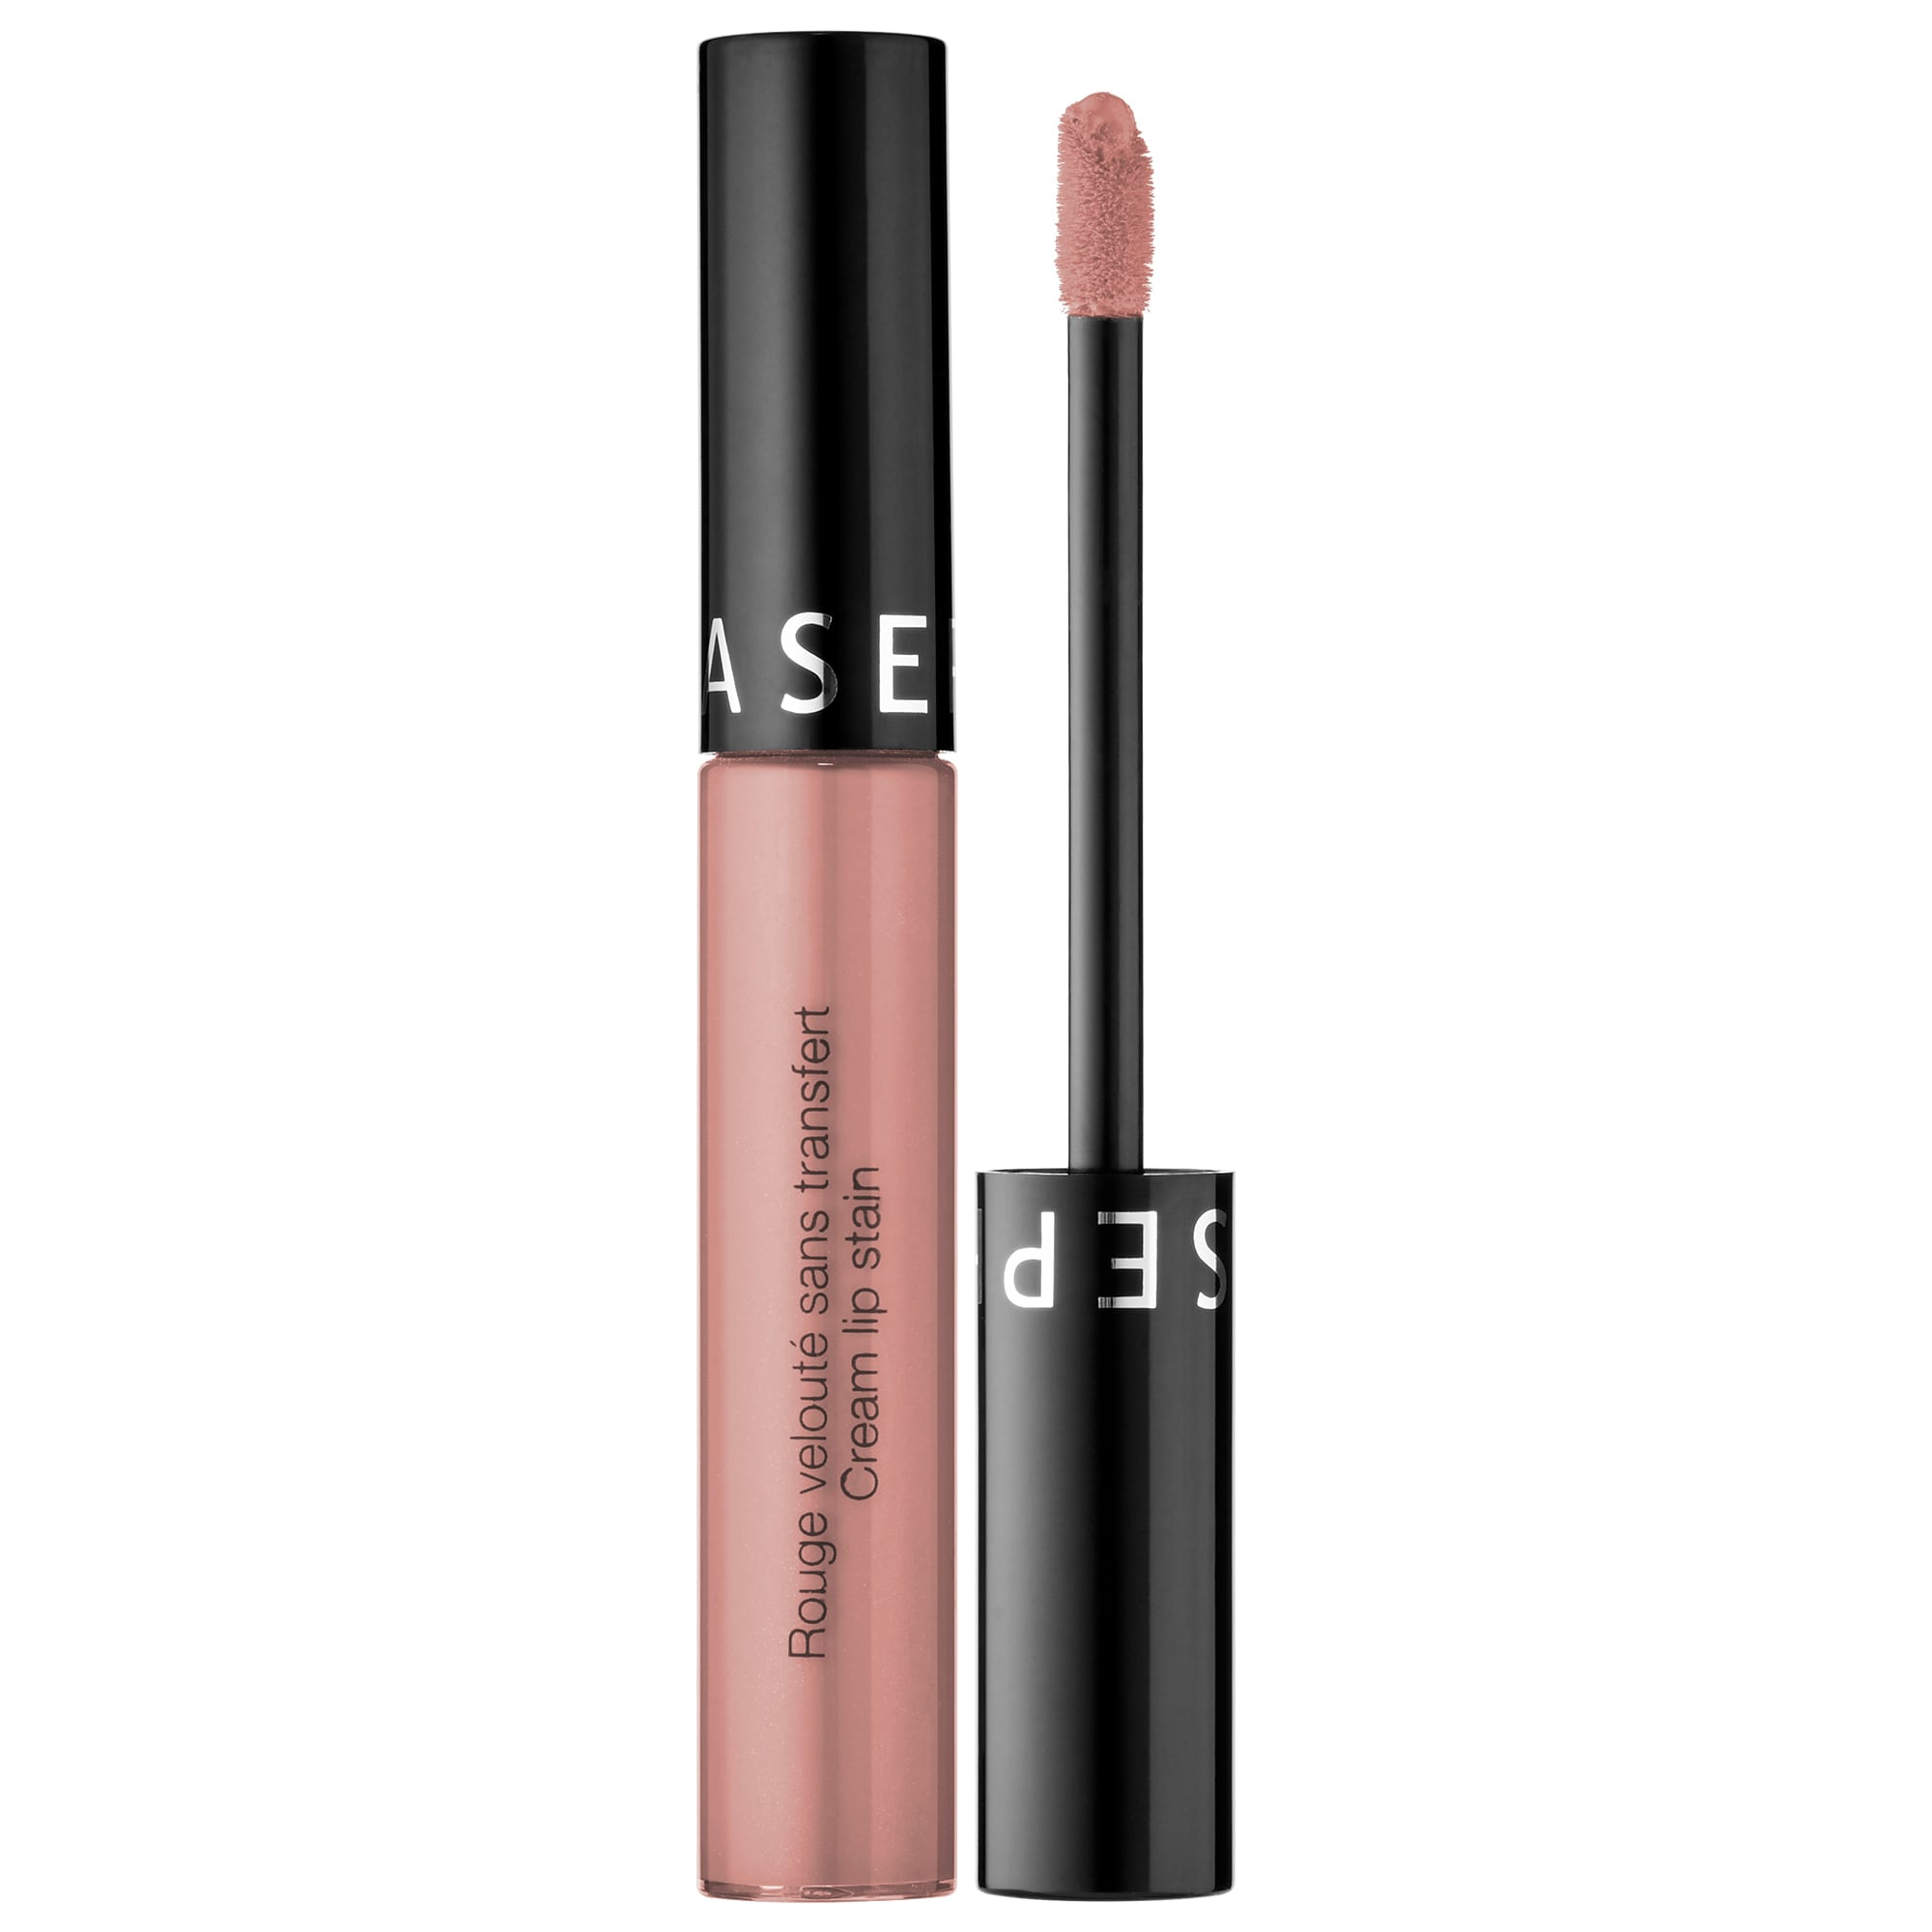 Sephora - Cream Lip Stain Liquid Lipstick